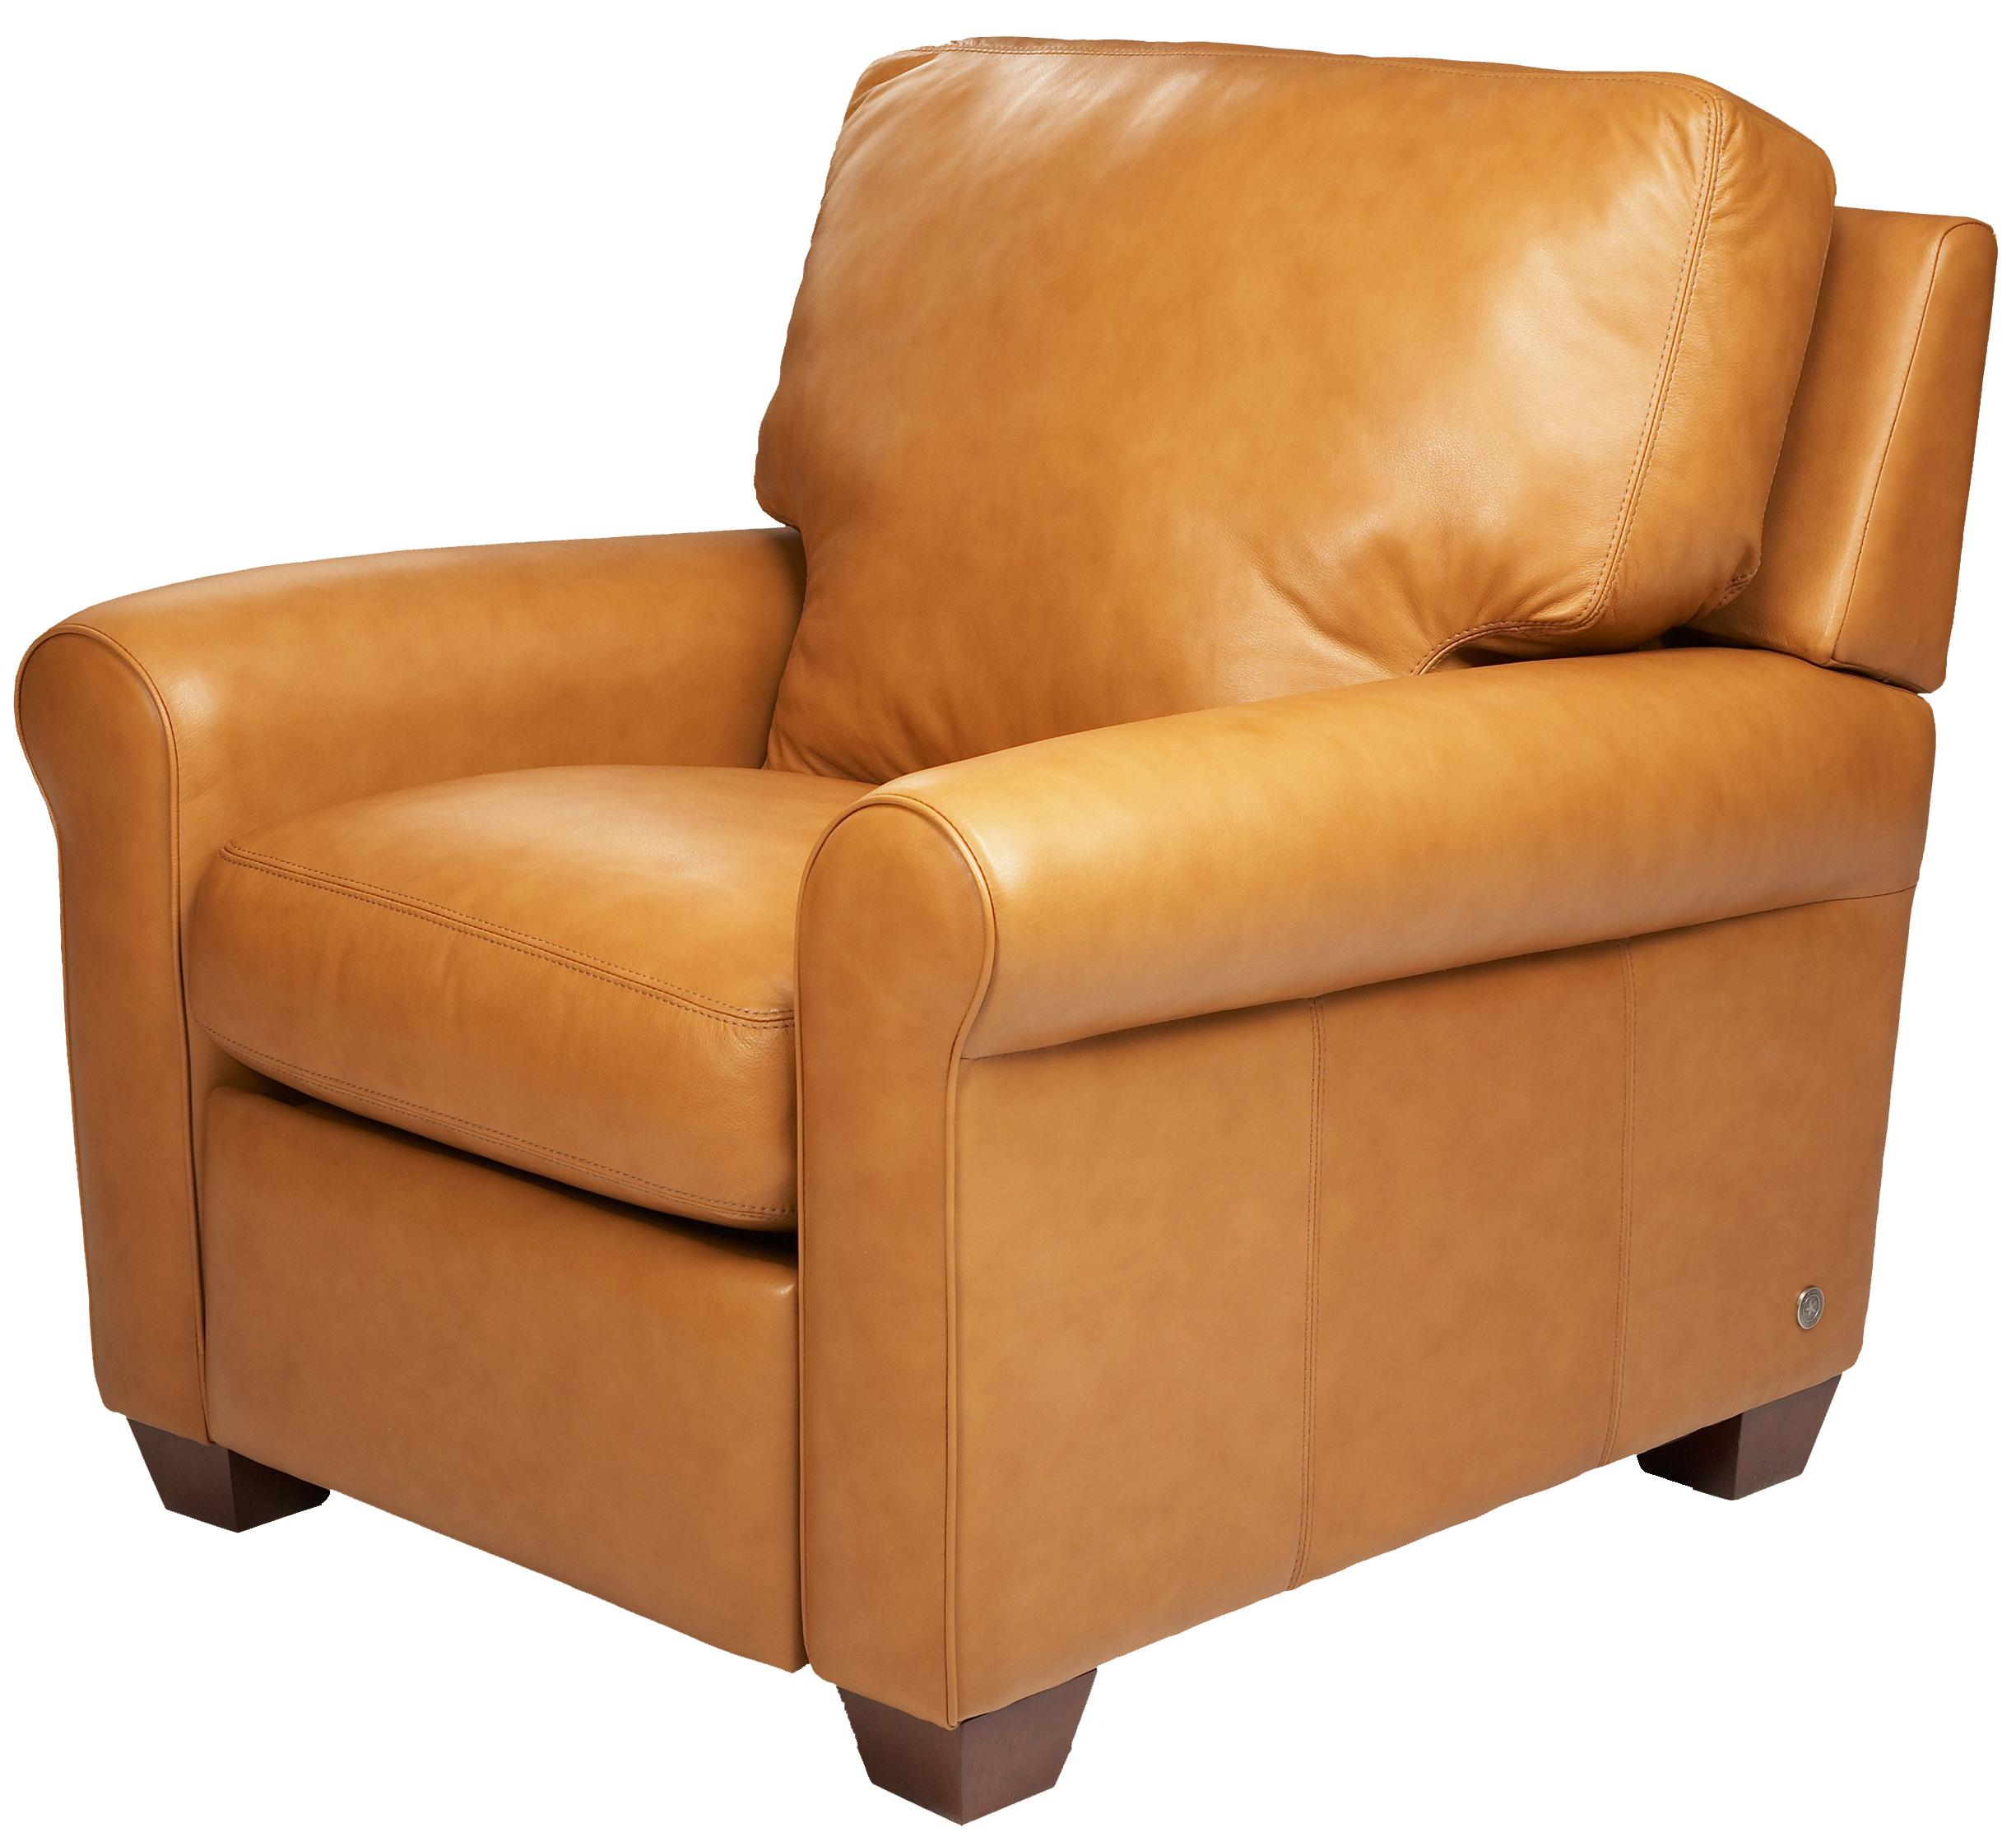 Savoy Contemporary High Leg Recliner by American Leather  sc 1 st  Furniture Dealer Locator - Find your furniture & American Leather Savoy Contemporary High Leg Recliner - AHFA ... islam-shia.org